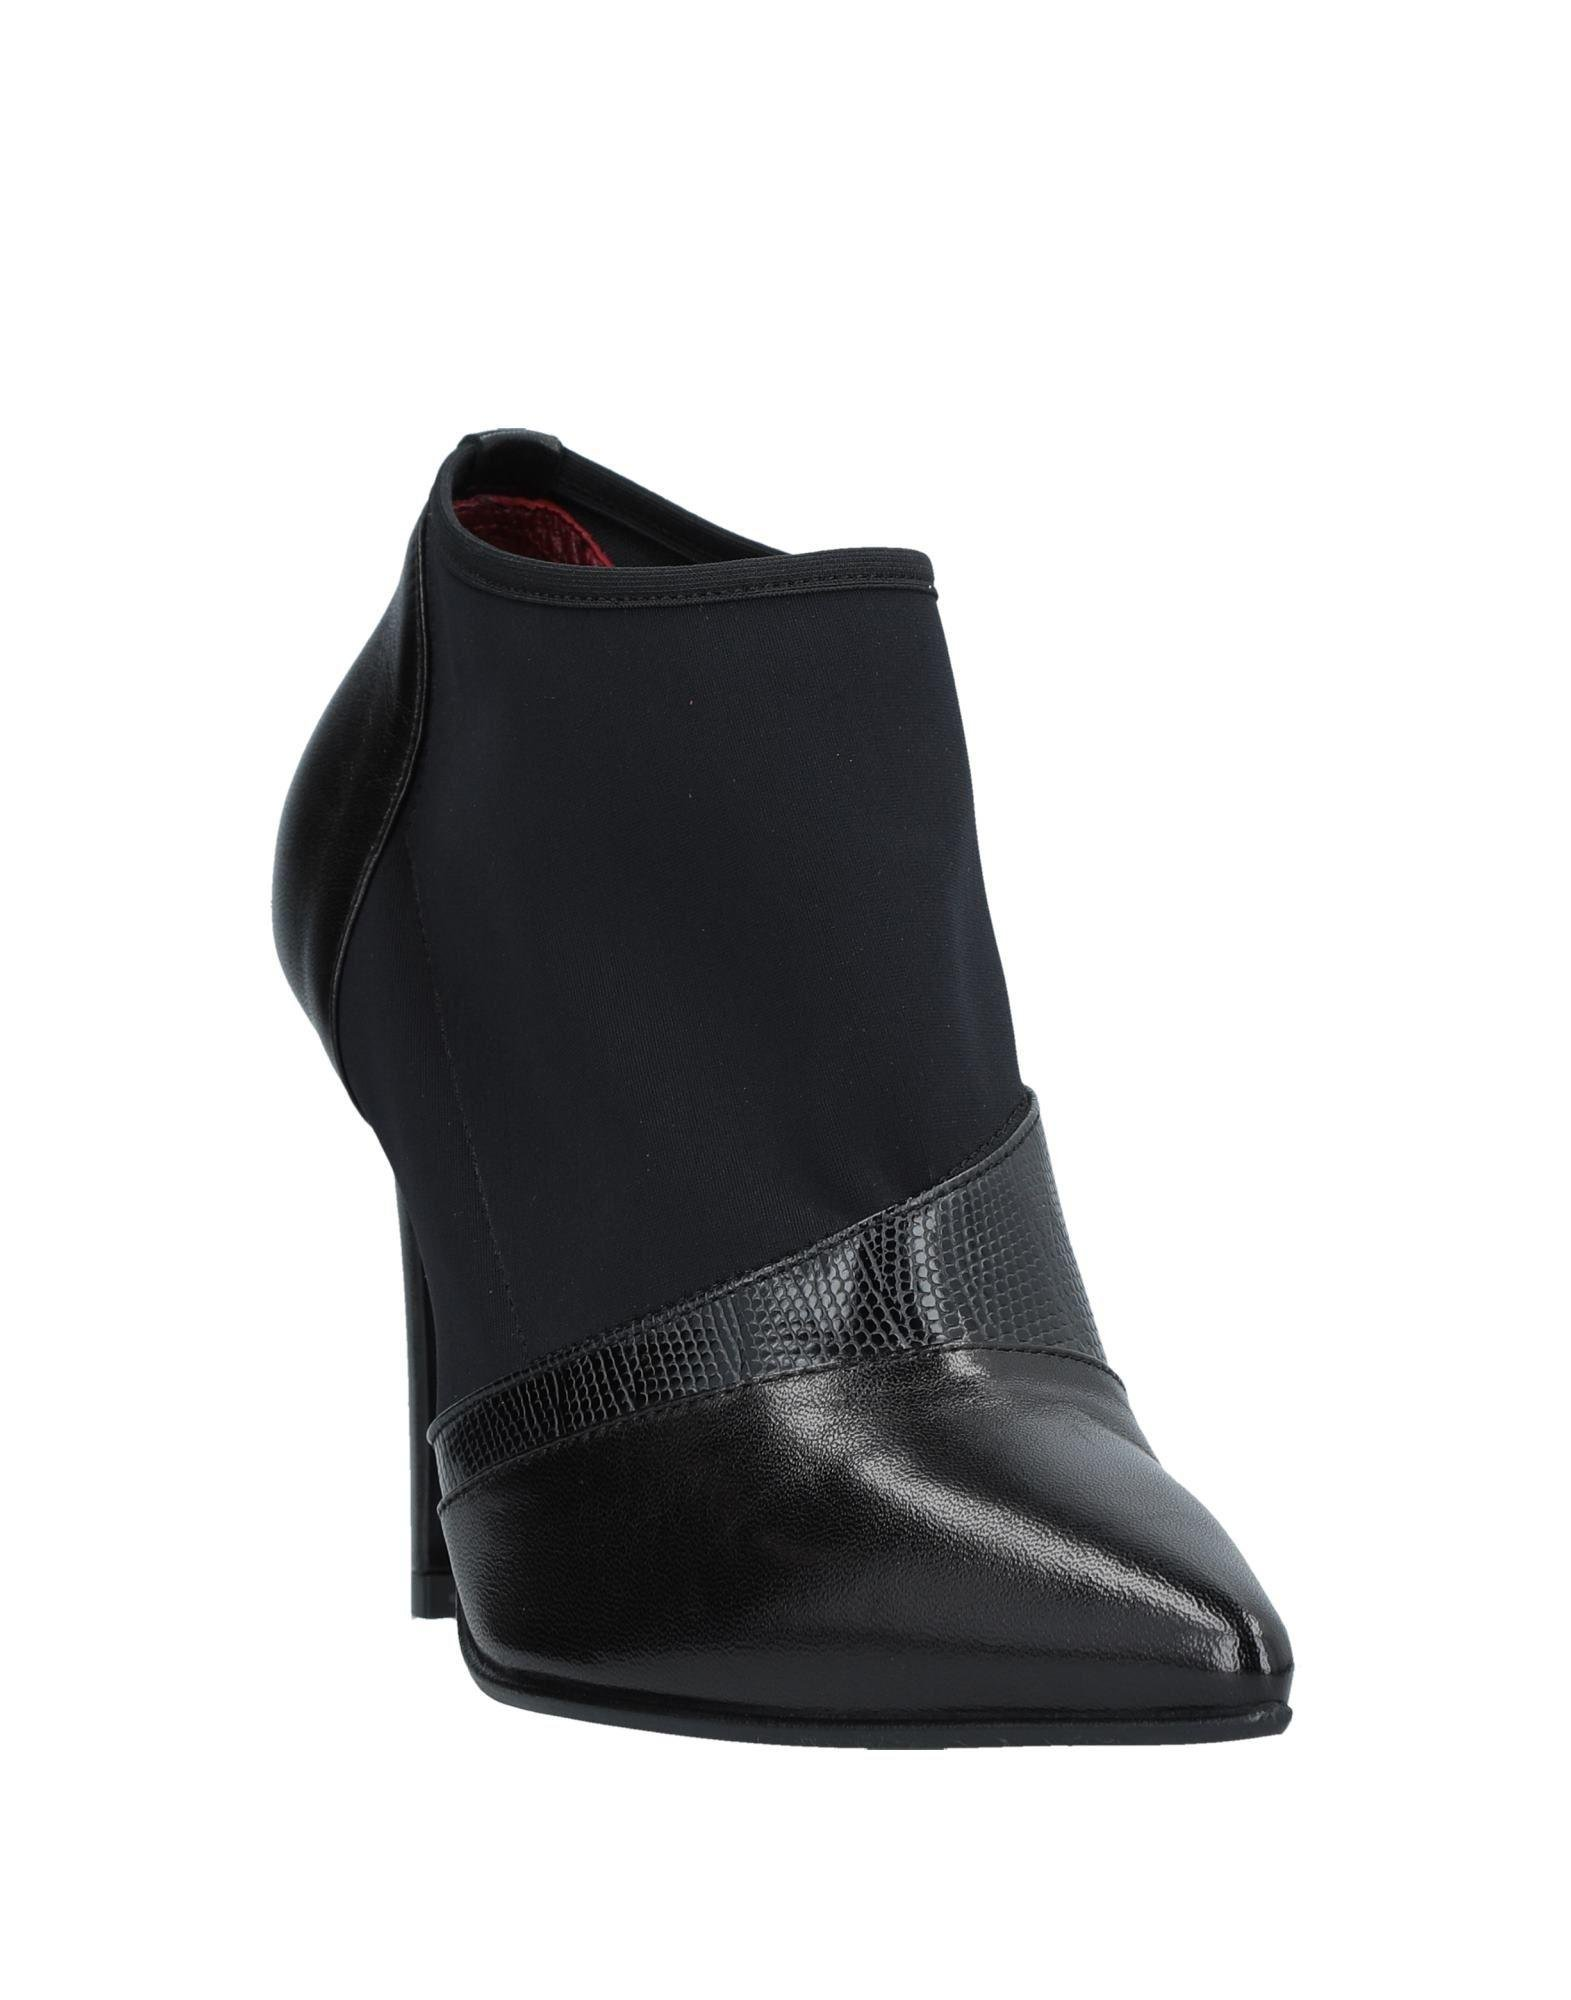 Couture Leather Bootie in Black